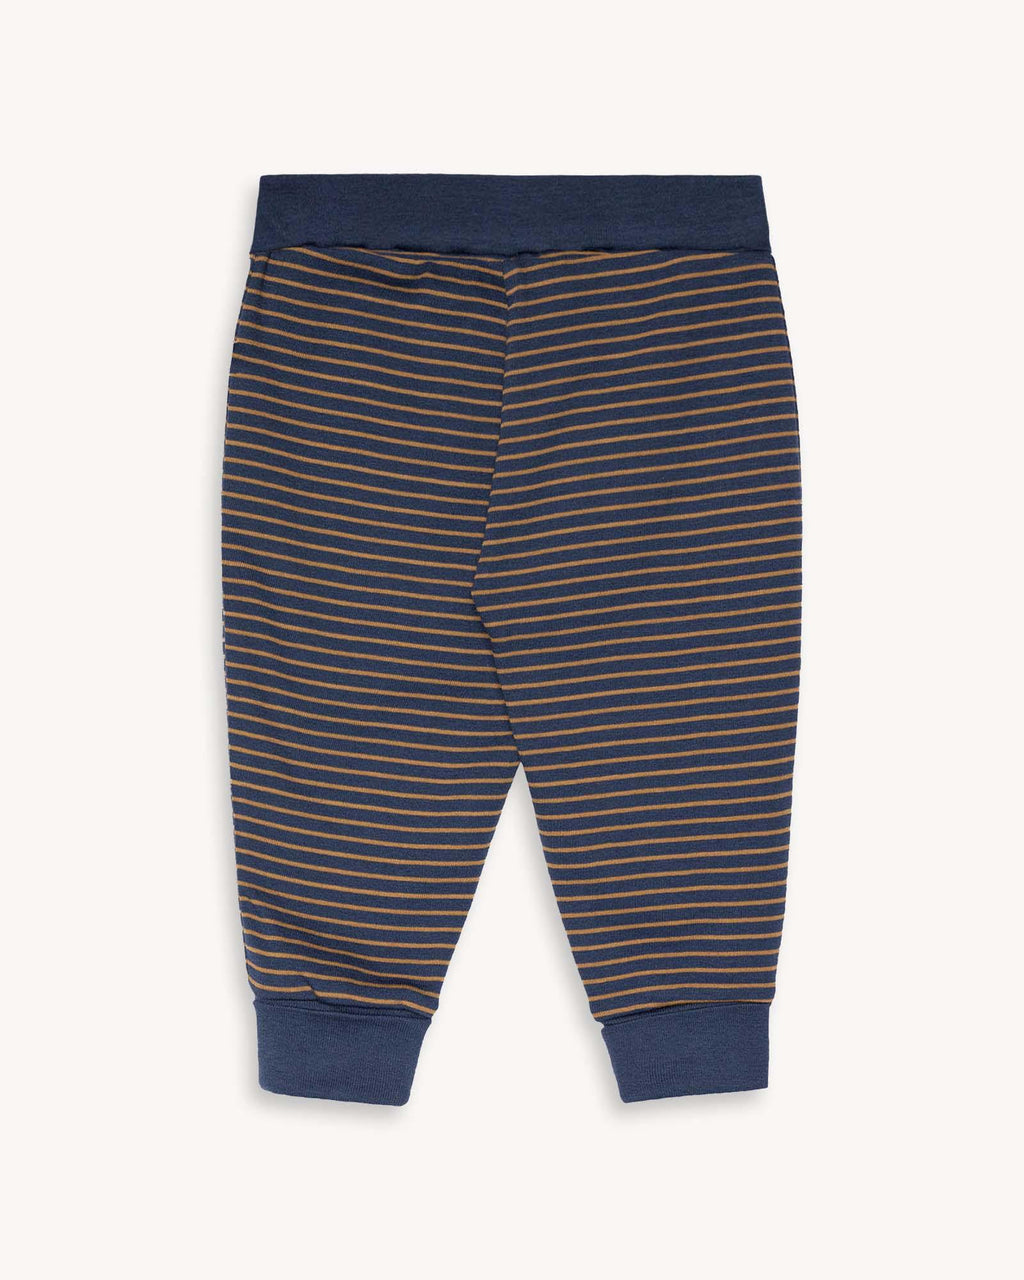 variant_1 | EN Brown Blue Baggy Kids Pants Trouser  with pads on the knees | DE Braun gestreifte Hose für Babies und Kinder mit Patches am Knie